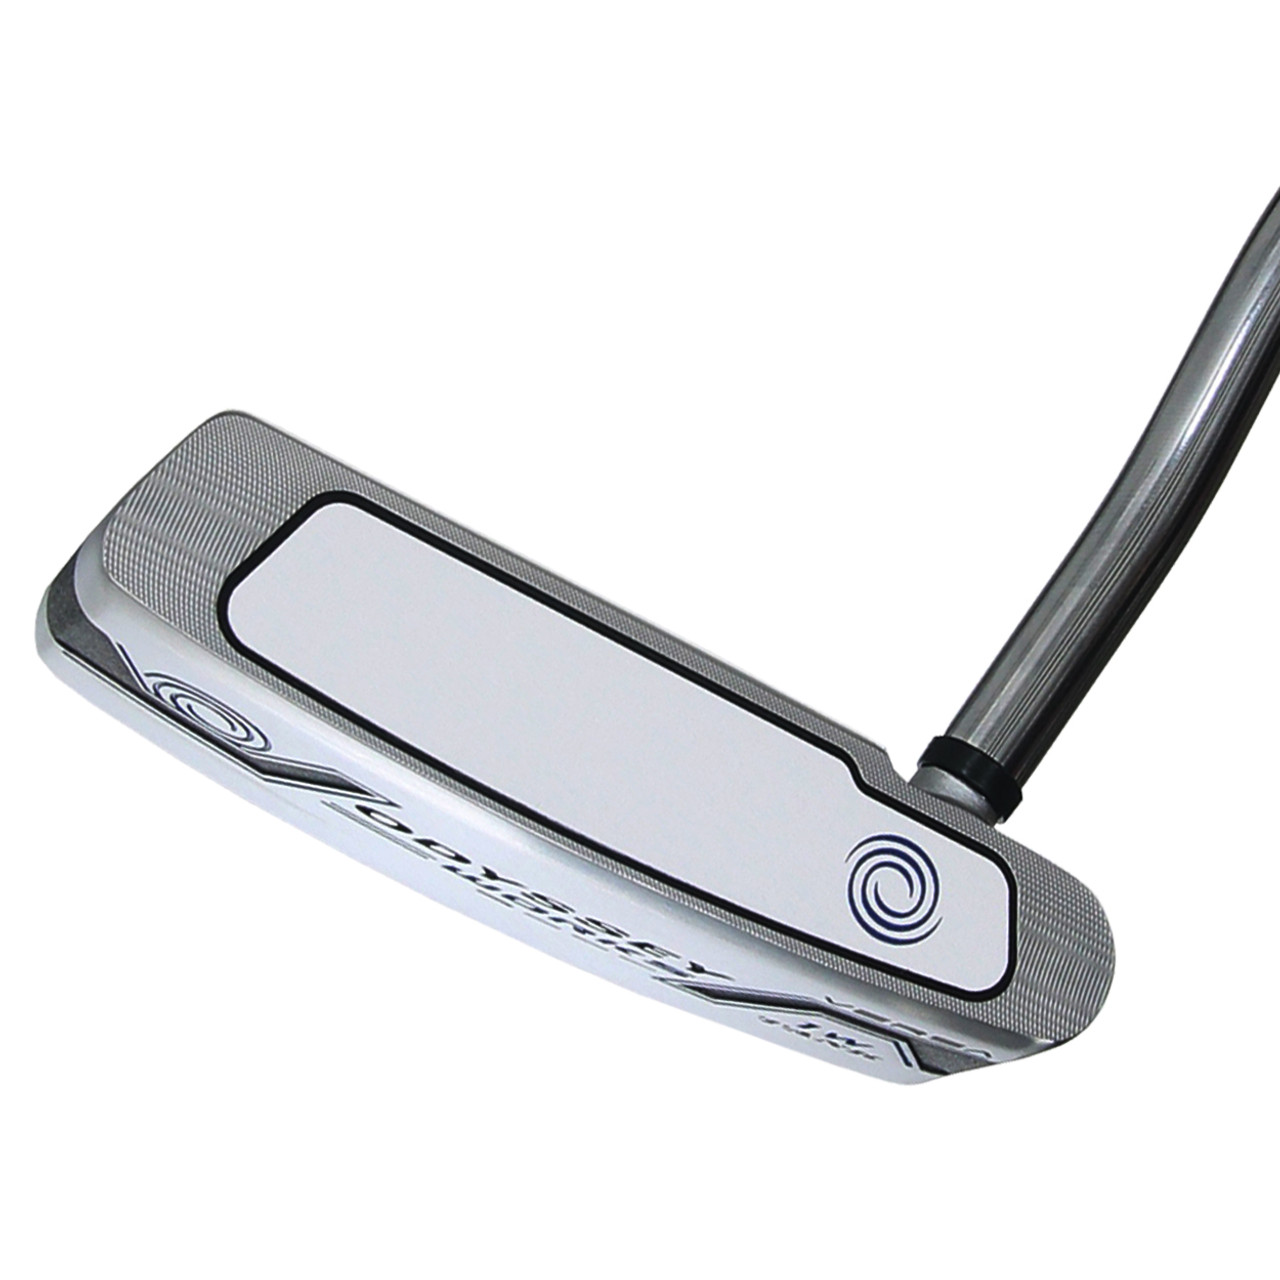 odyssey works versa 1 putter review